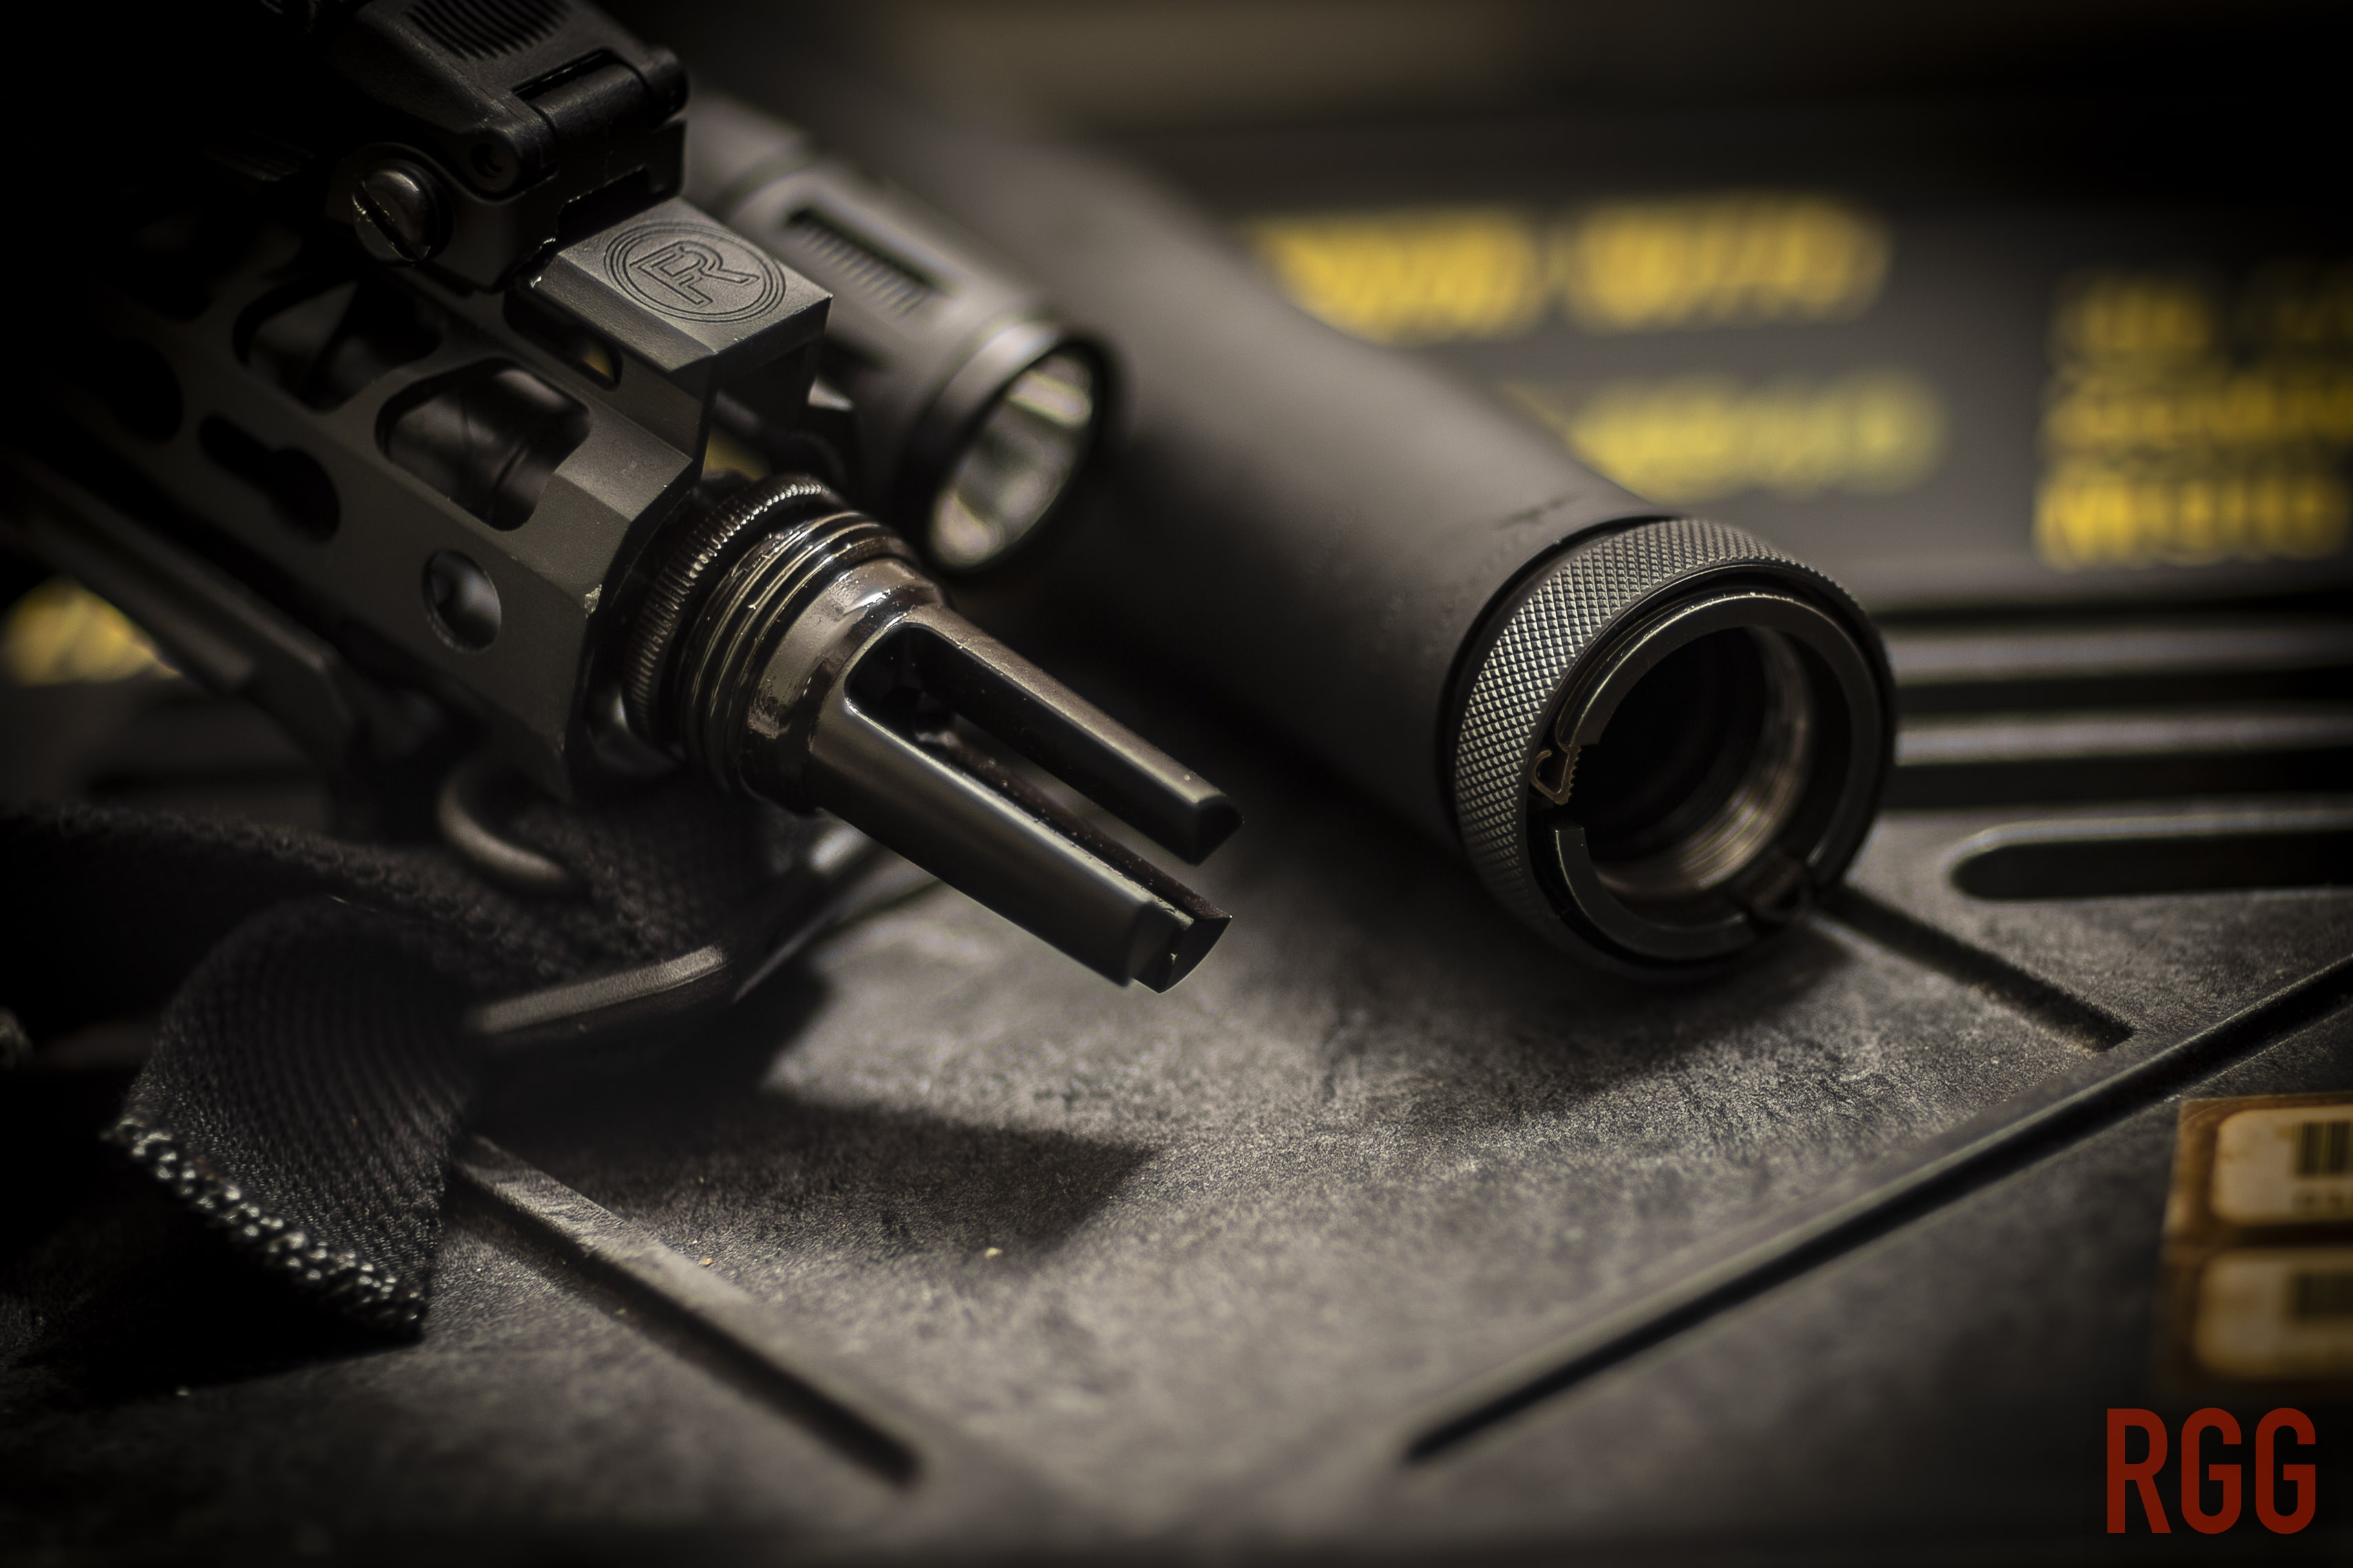 The legal sale of suppressors is goverend by the NFA. Which is sad.